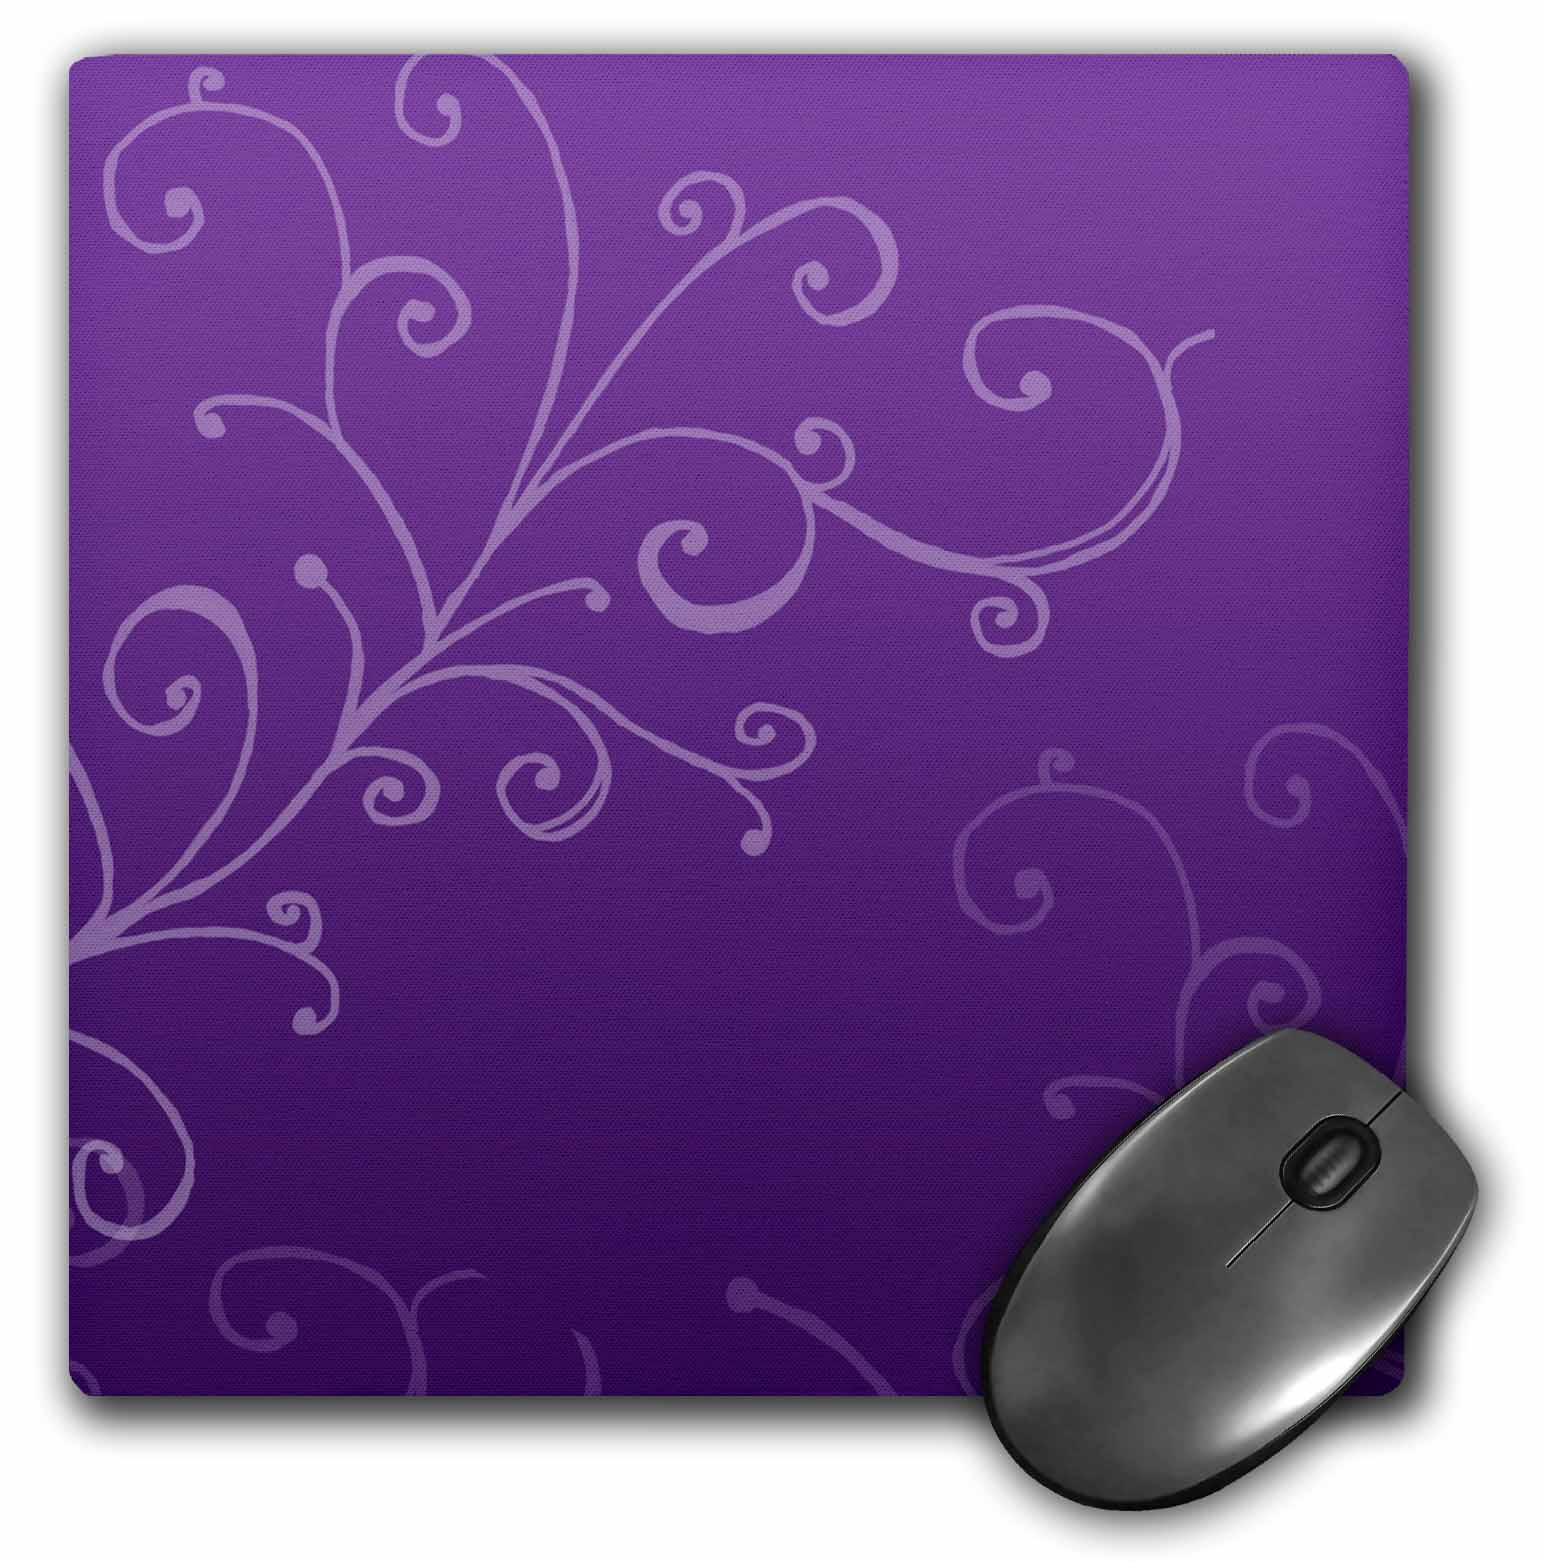 3dRose Stylish Swirl Purple, Mouse Pad, 8 by 8 inches